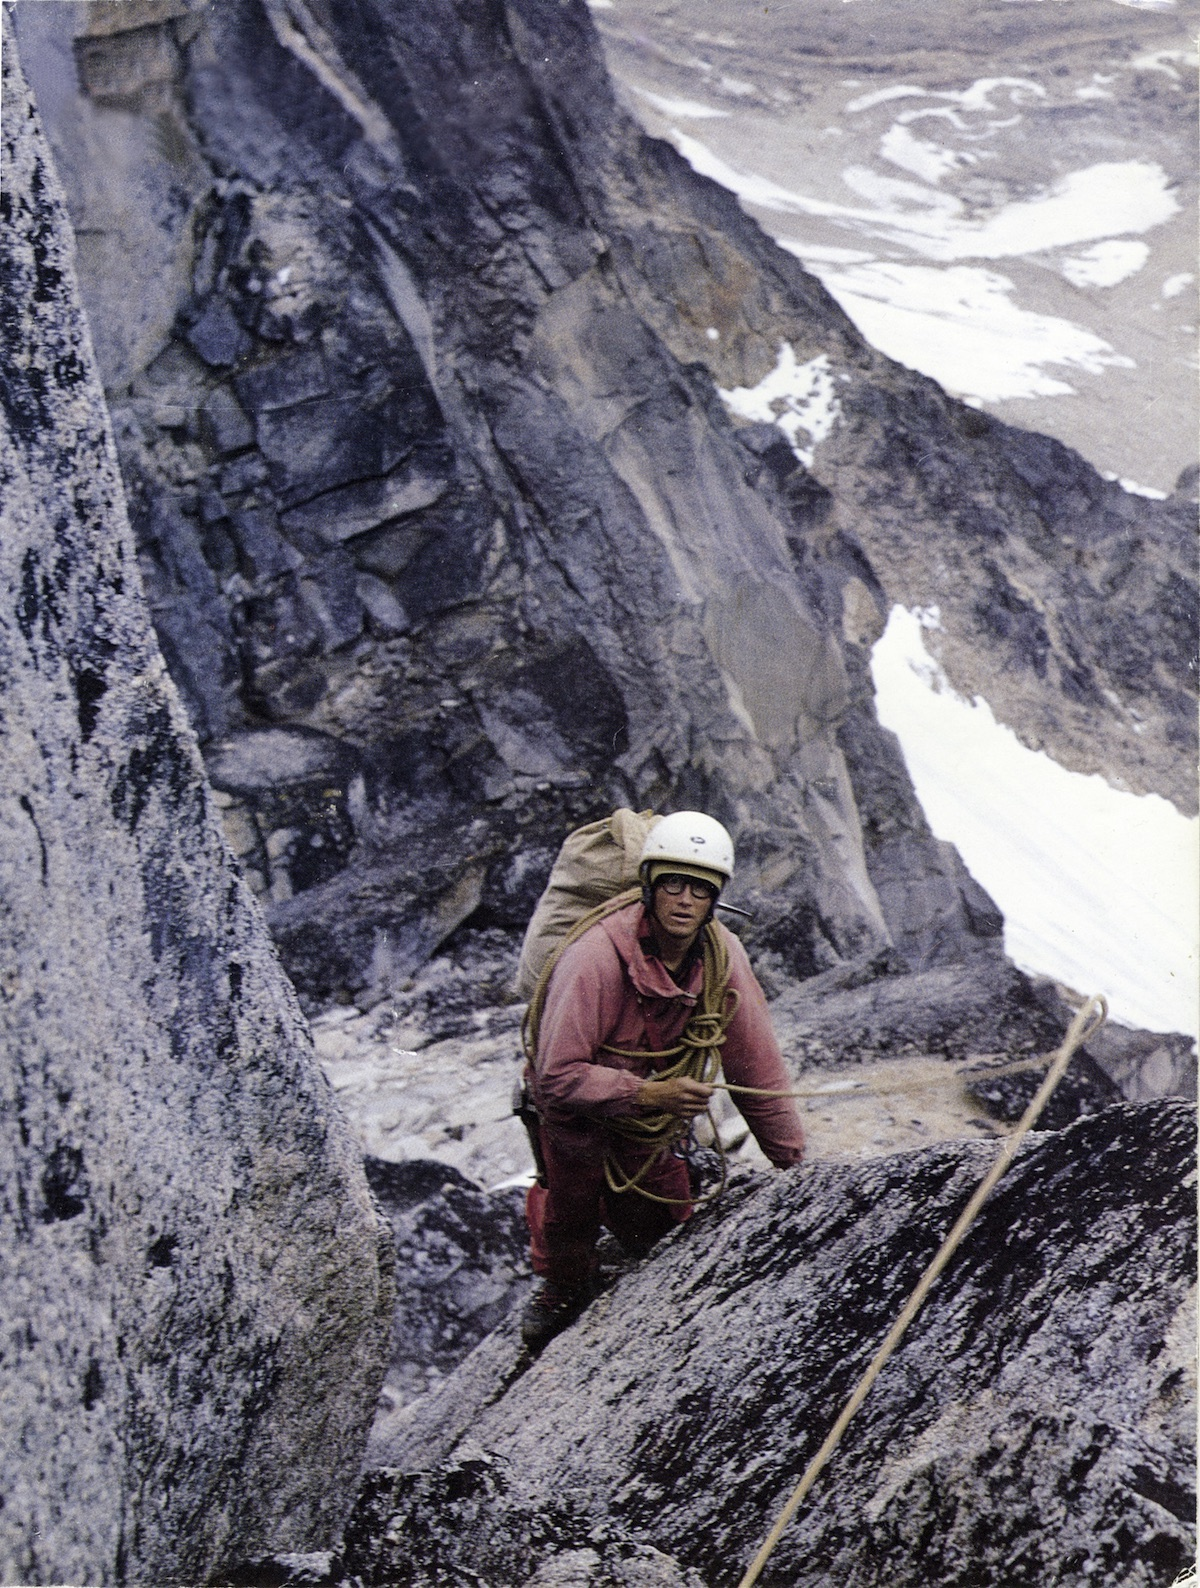 David Roberts on south ridge of the Angel, Revelation Mountains, Alaska, 1967. Roberts wrote about the eventful expedition in the 1968 American Alpine Journal. [Photo] Matt Hale